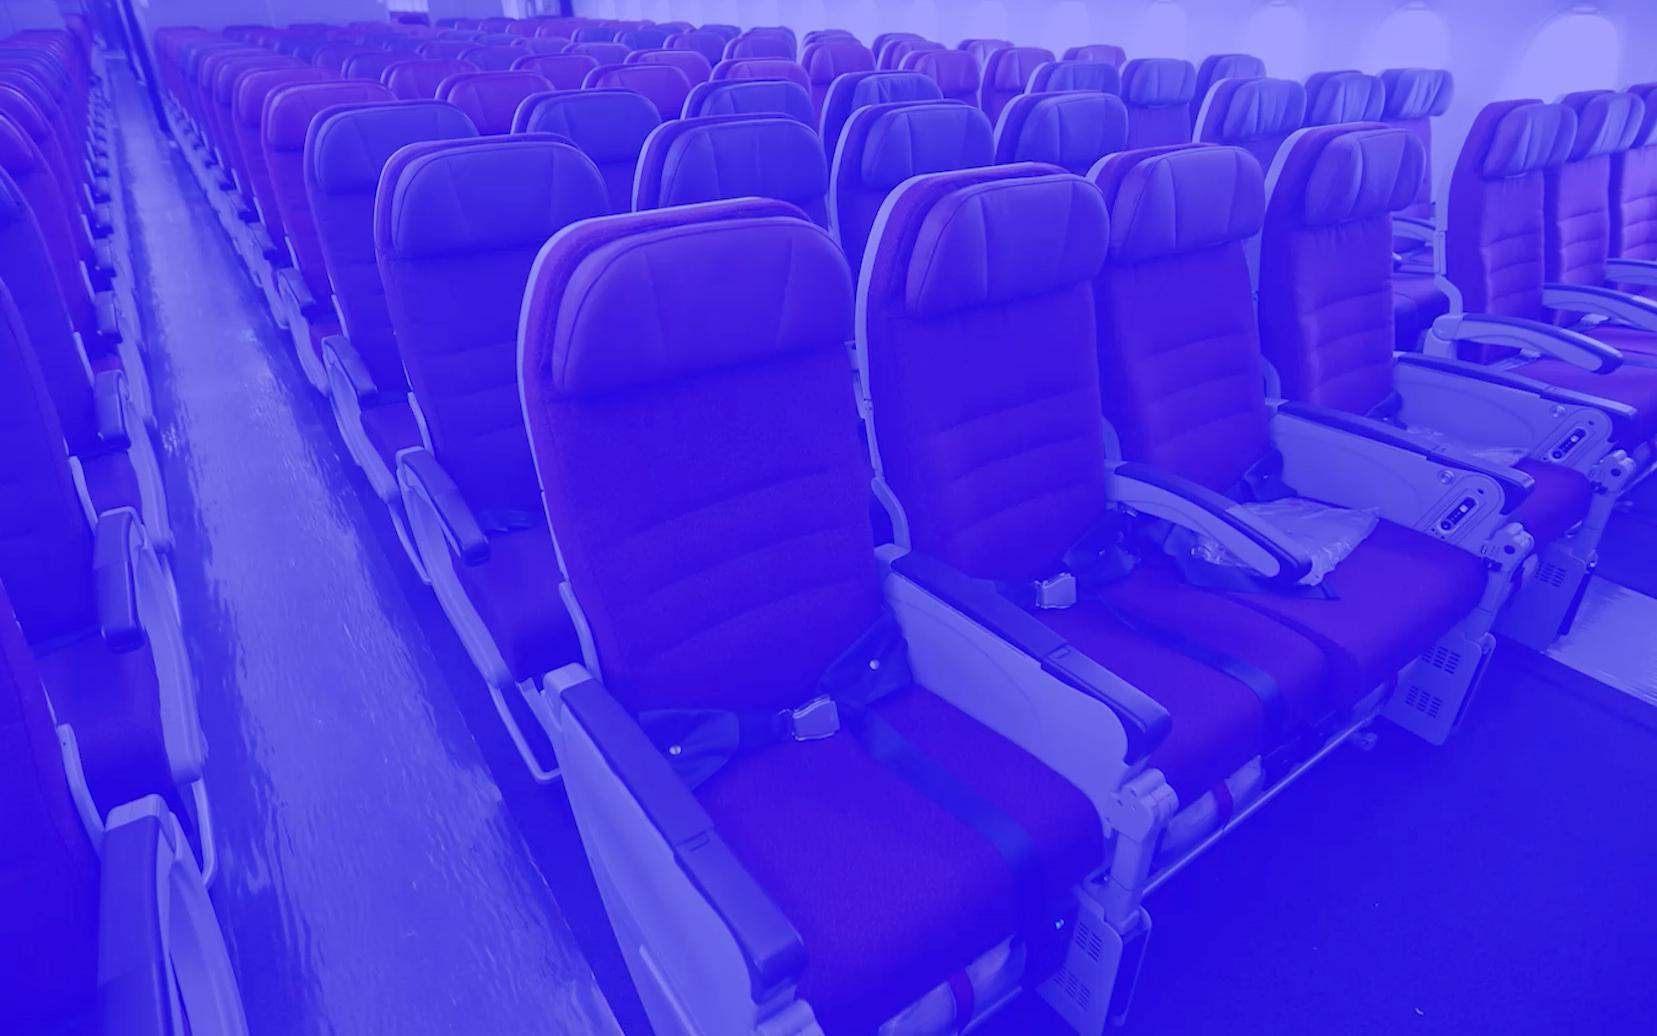 Why Do Airplanes Dim Lights on Takeoff? (Video)